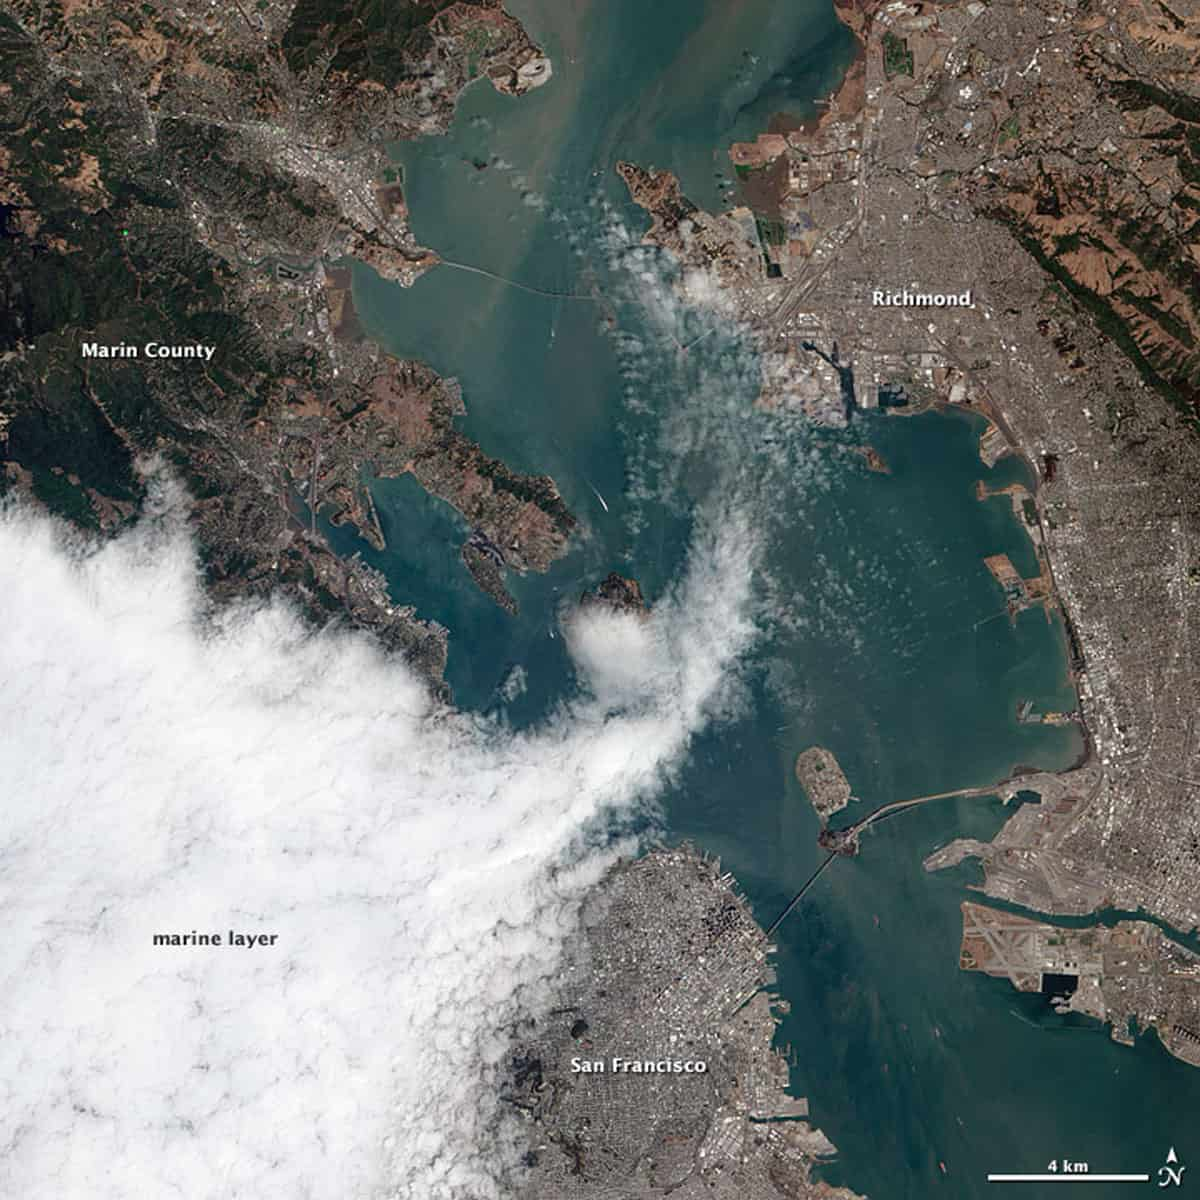 Encroaching fog over the city of San Francisco.  Image; NASA's Earth Observing-1 (EO-1) satellite, August 16, 2012.